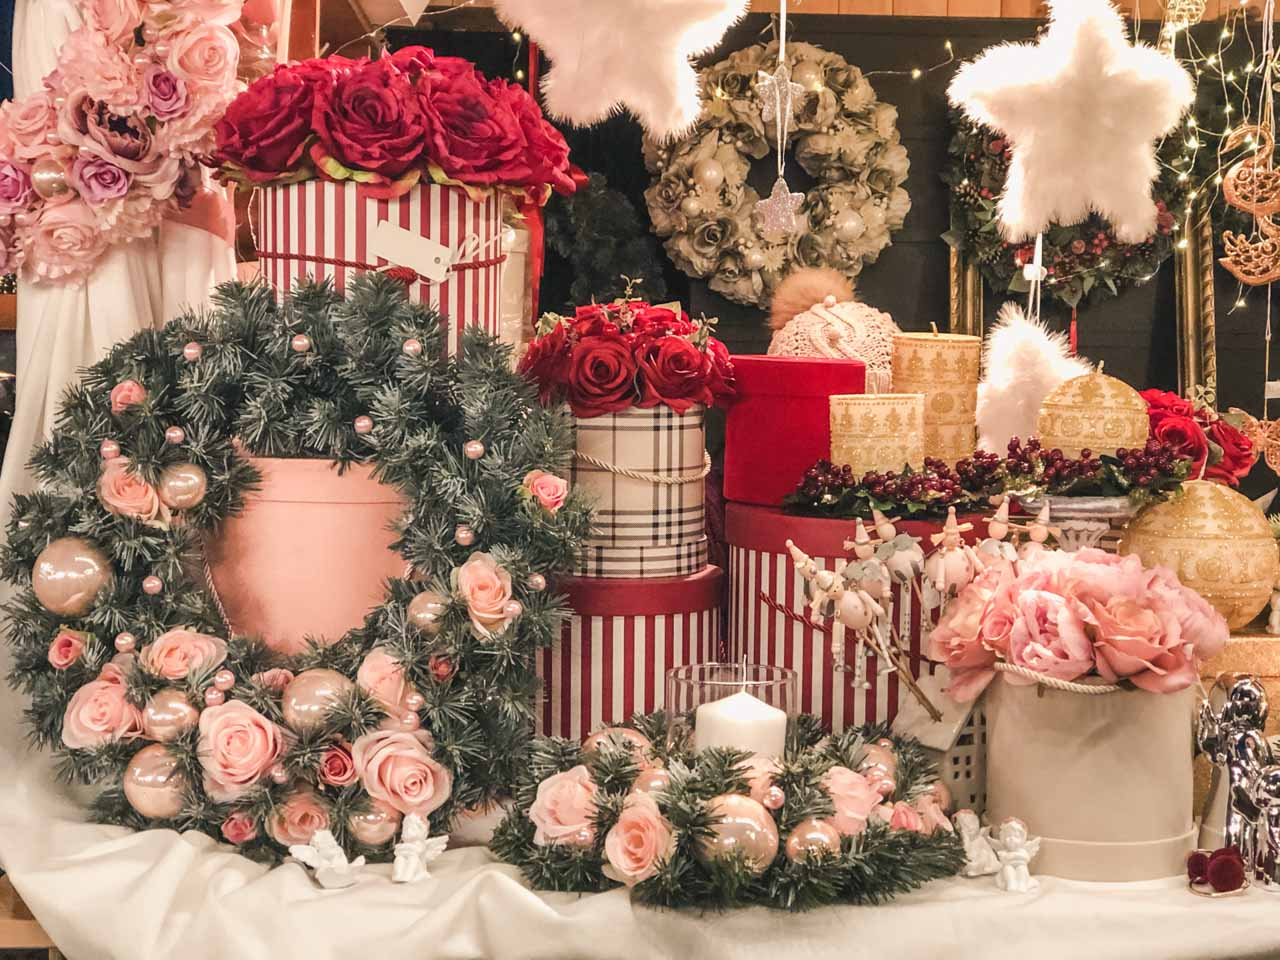 Christmas wreaths and roses in decorative boxes